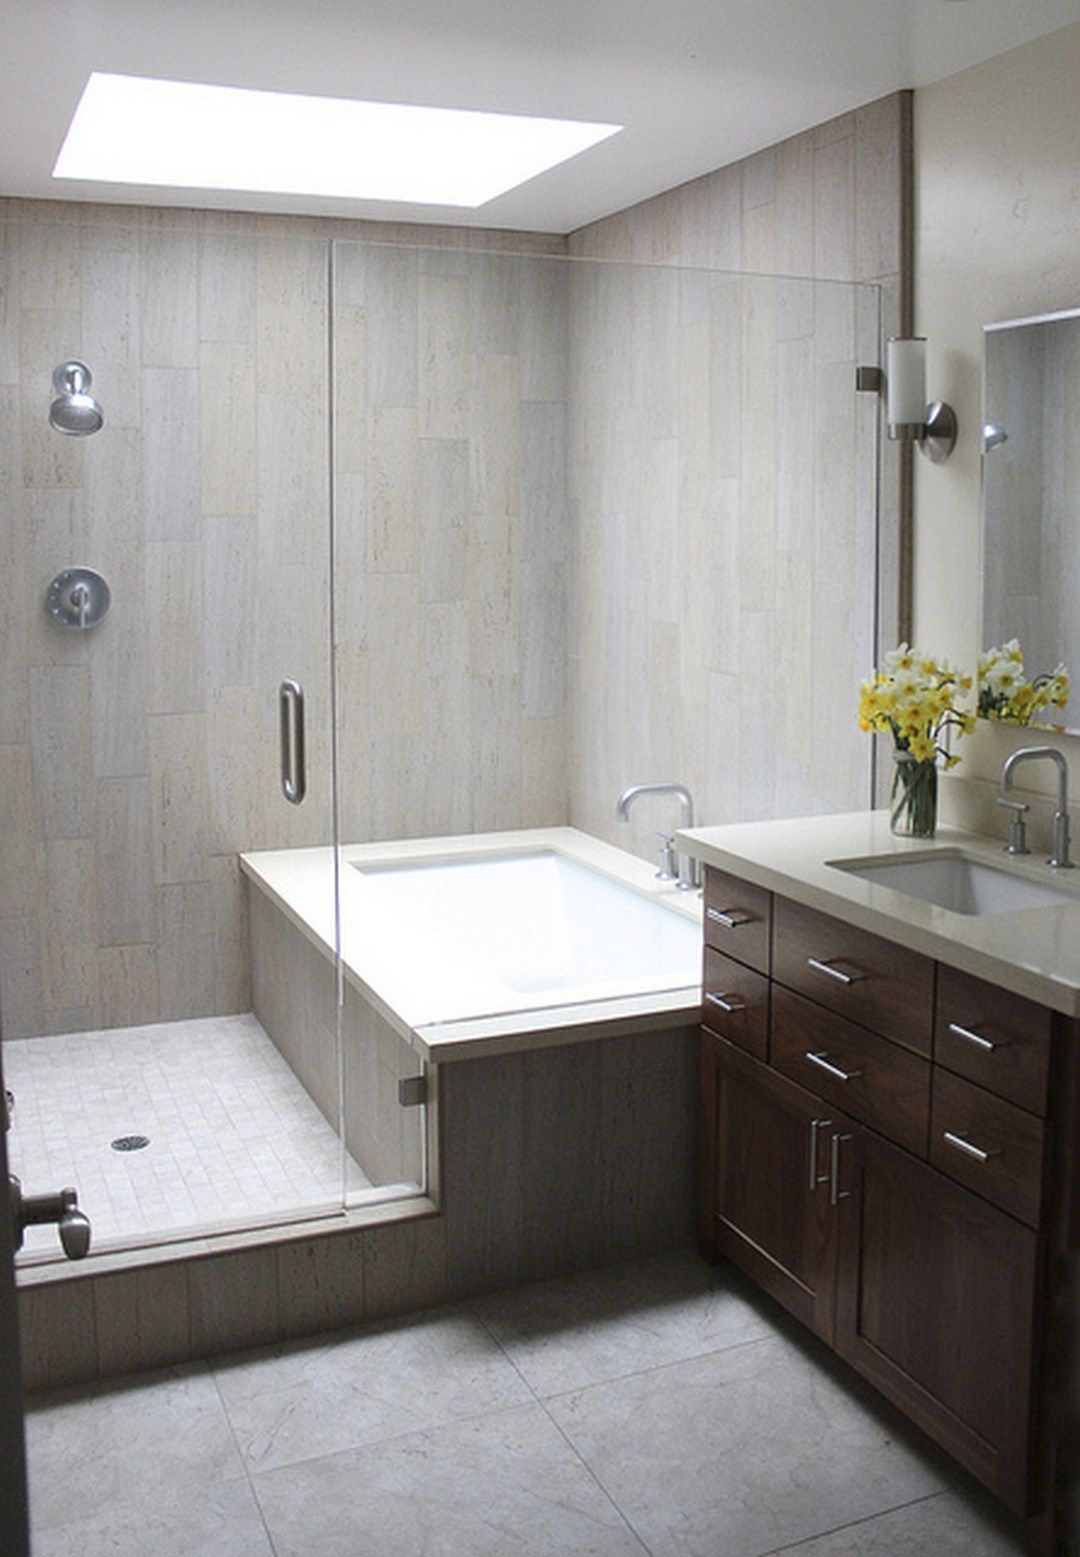 99 Small Master Bathroom Makeover Ideas On A Budget 65